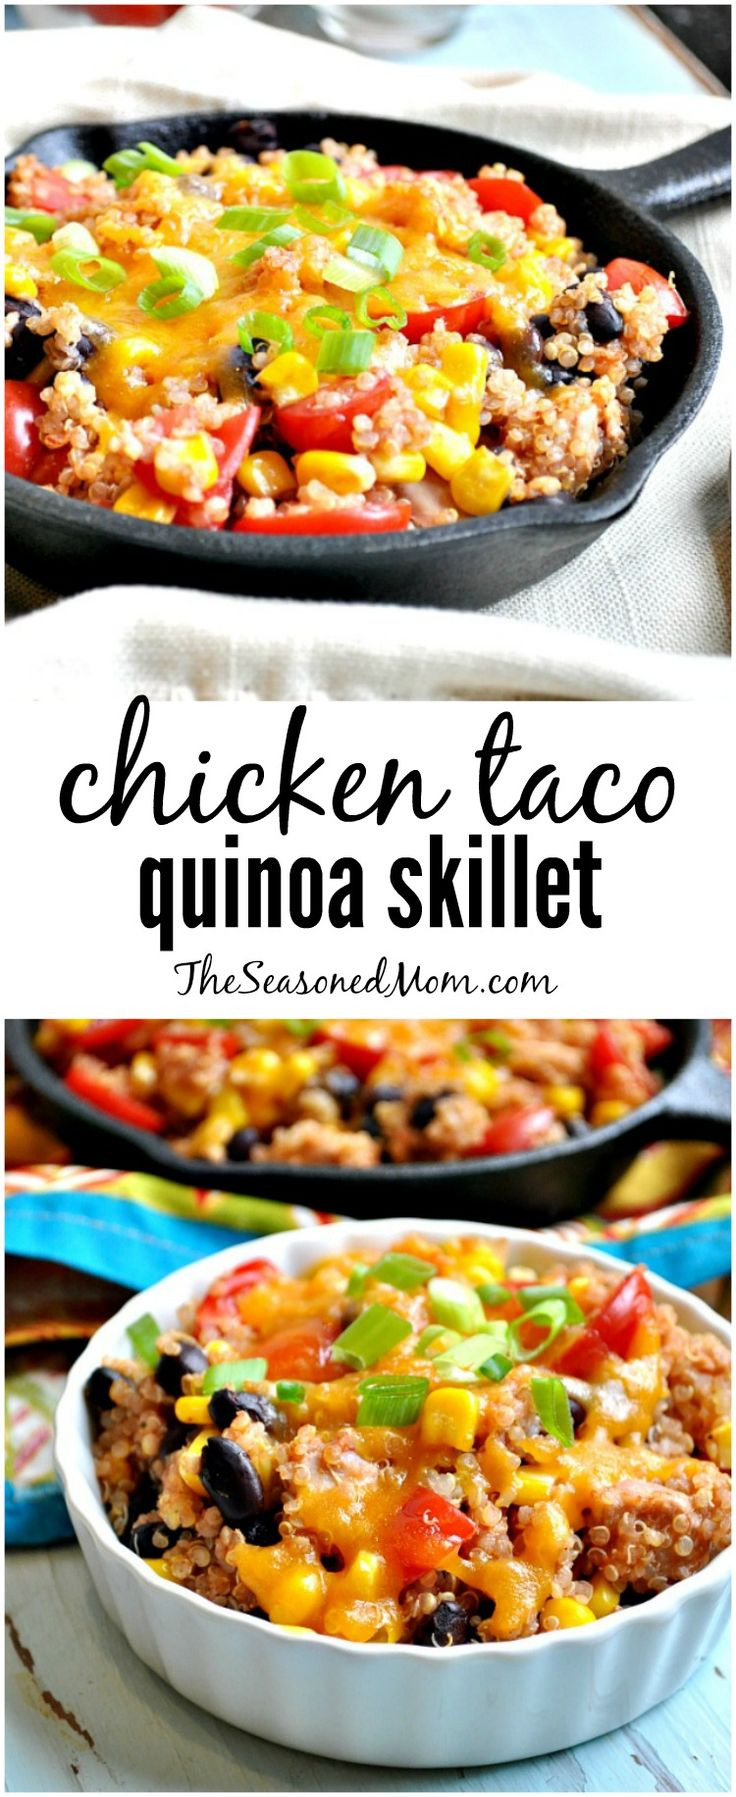 CHICKEN TACO QUINOA SKILLET is an easy, healthy, and family-friendly way to use up leftovers for dinner tonight!